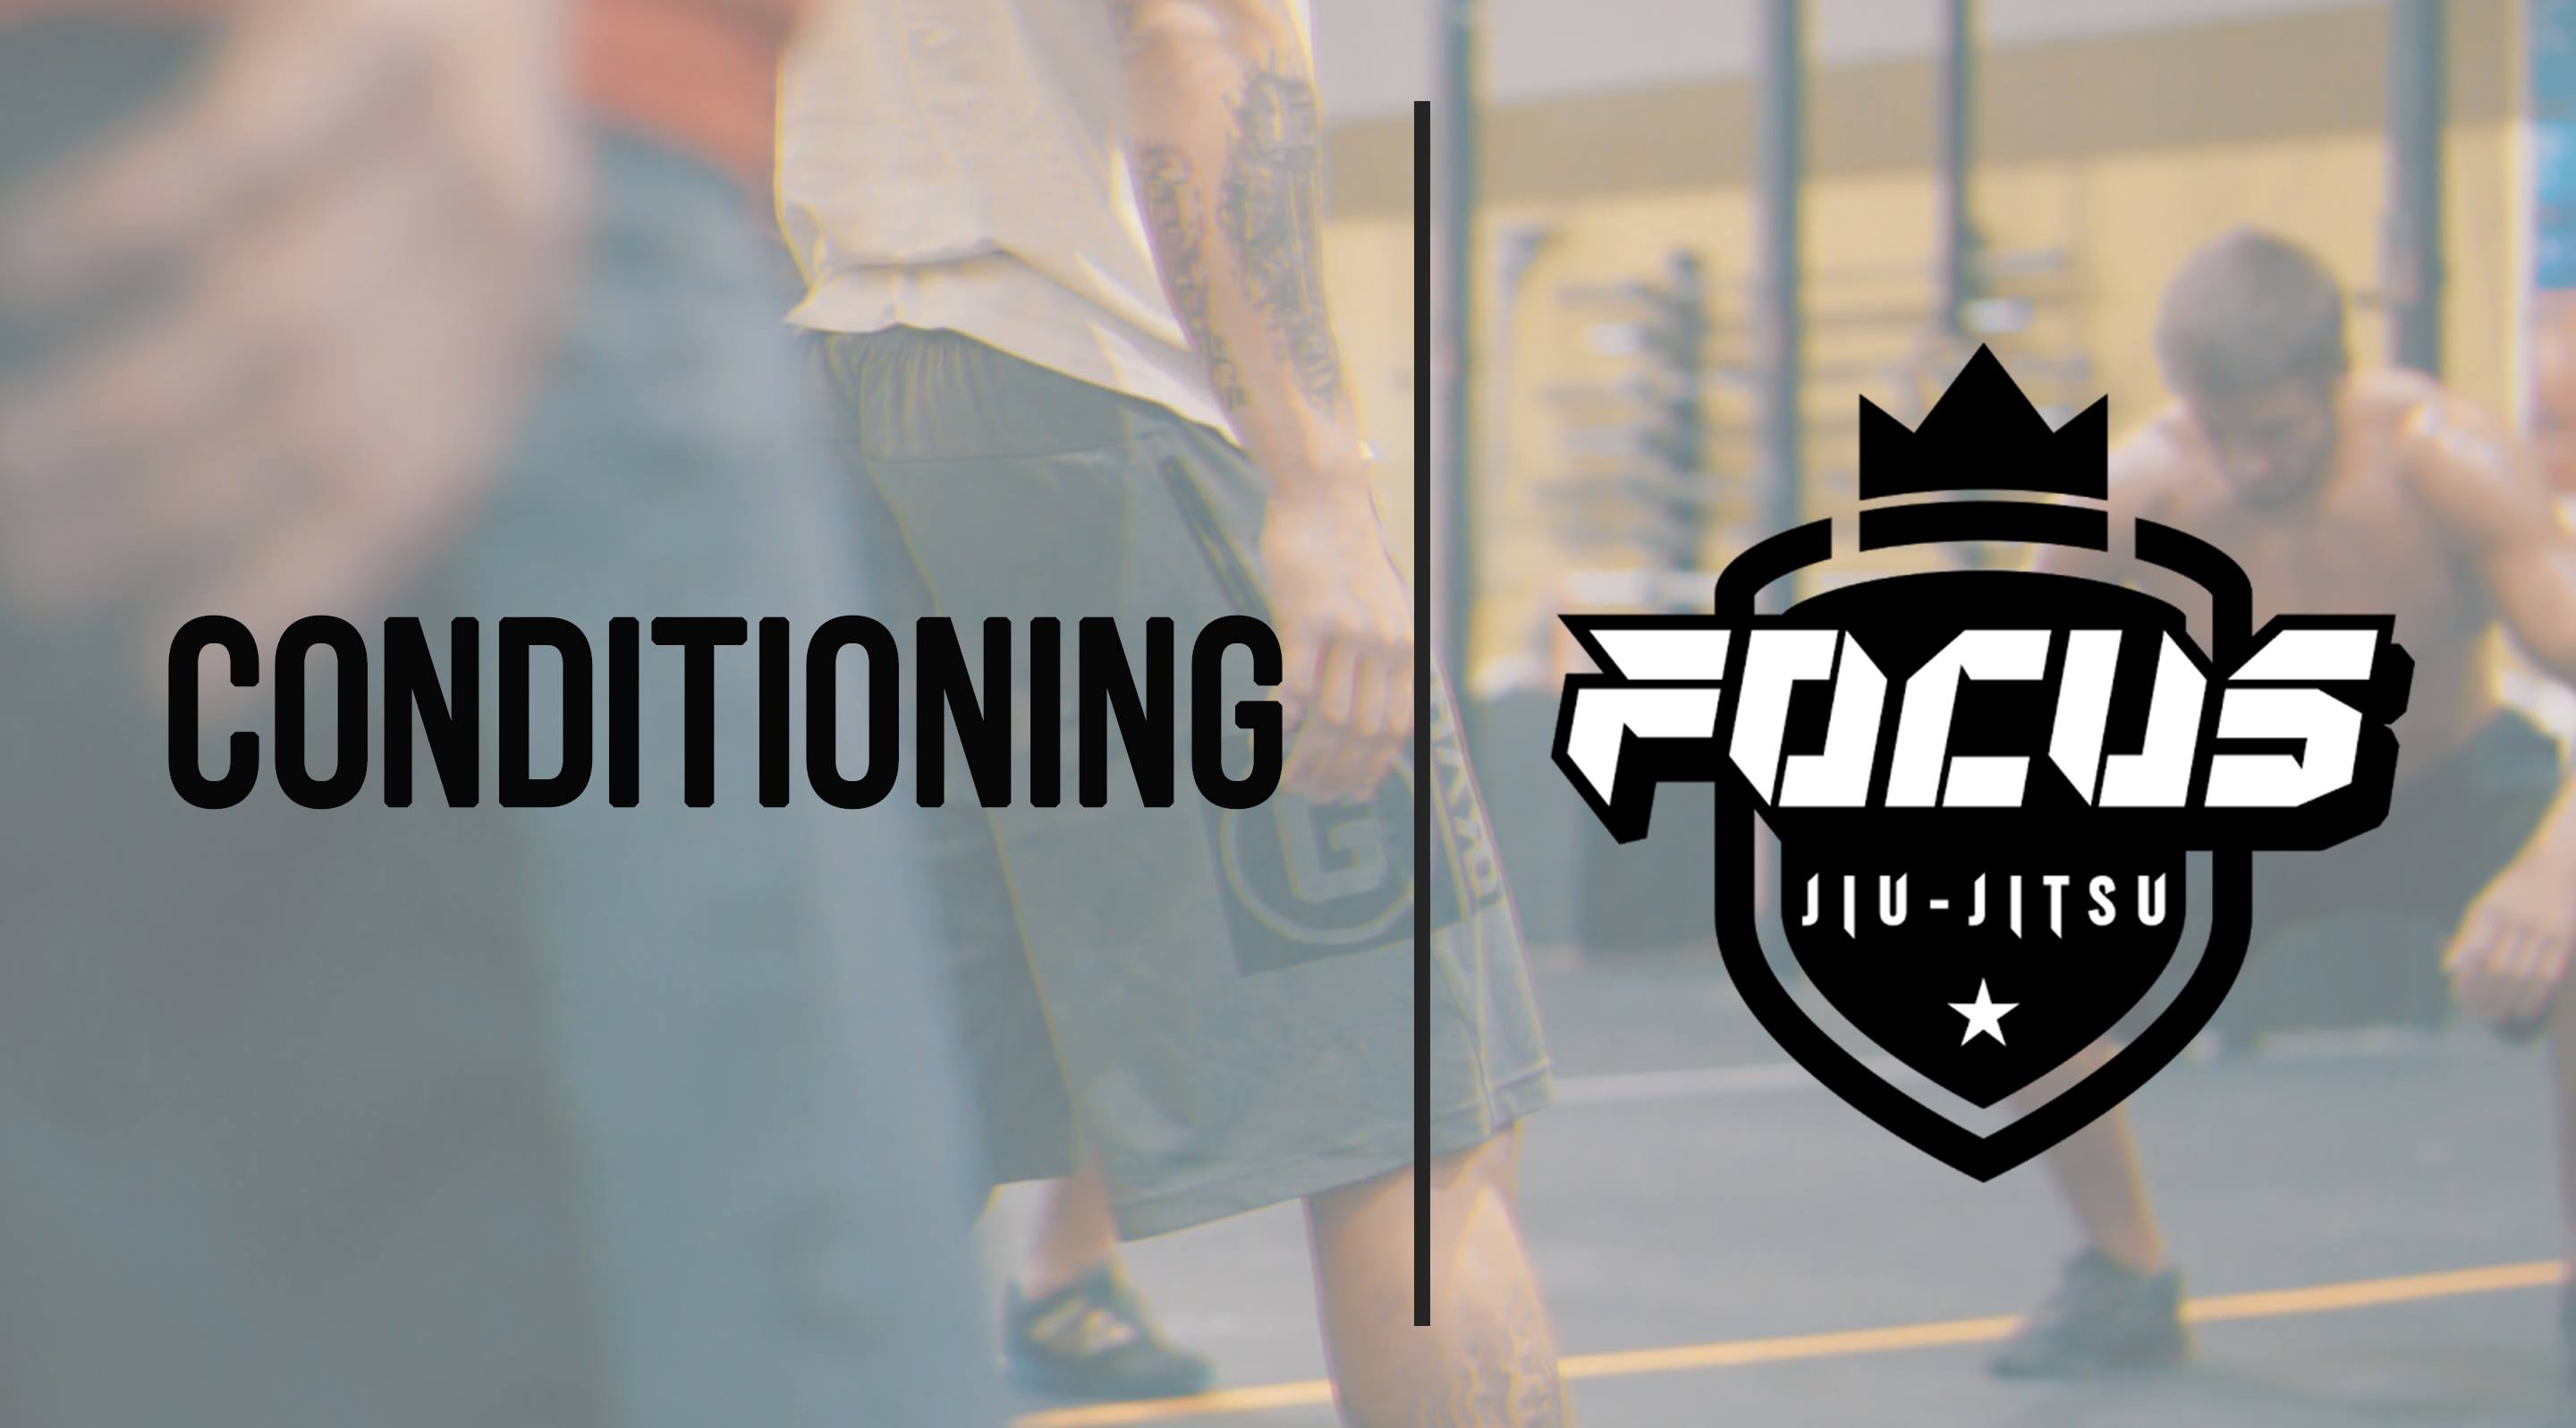 CONDITIONING - Focus Jiu-Jitsu